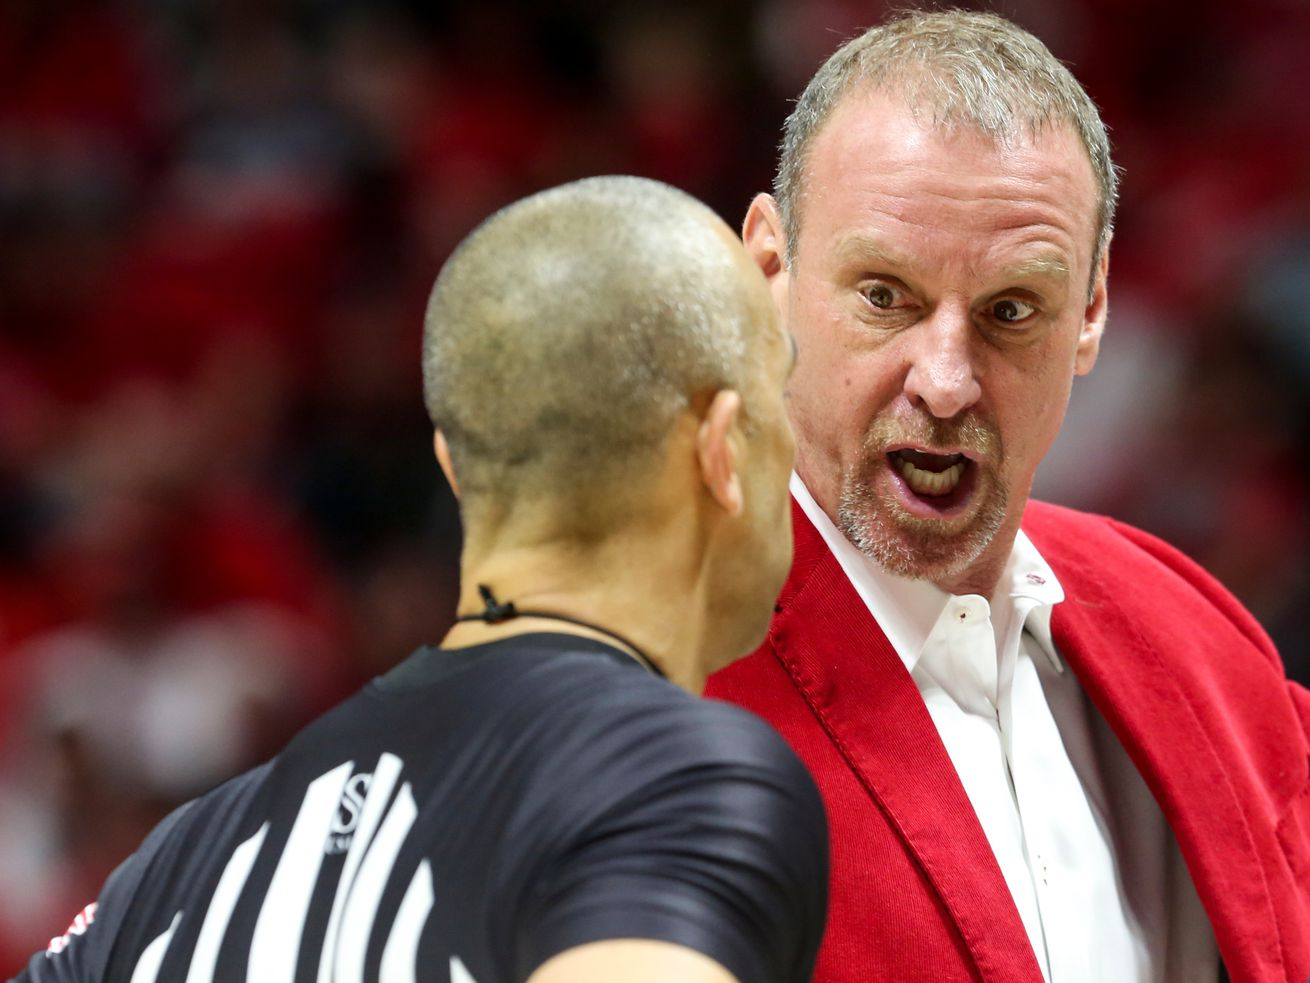 Redshirt rule: Utah's Krystkowiak would like to see basketball adopt policy similar to college football's policy